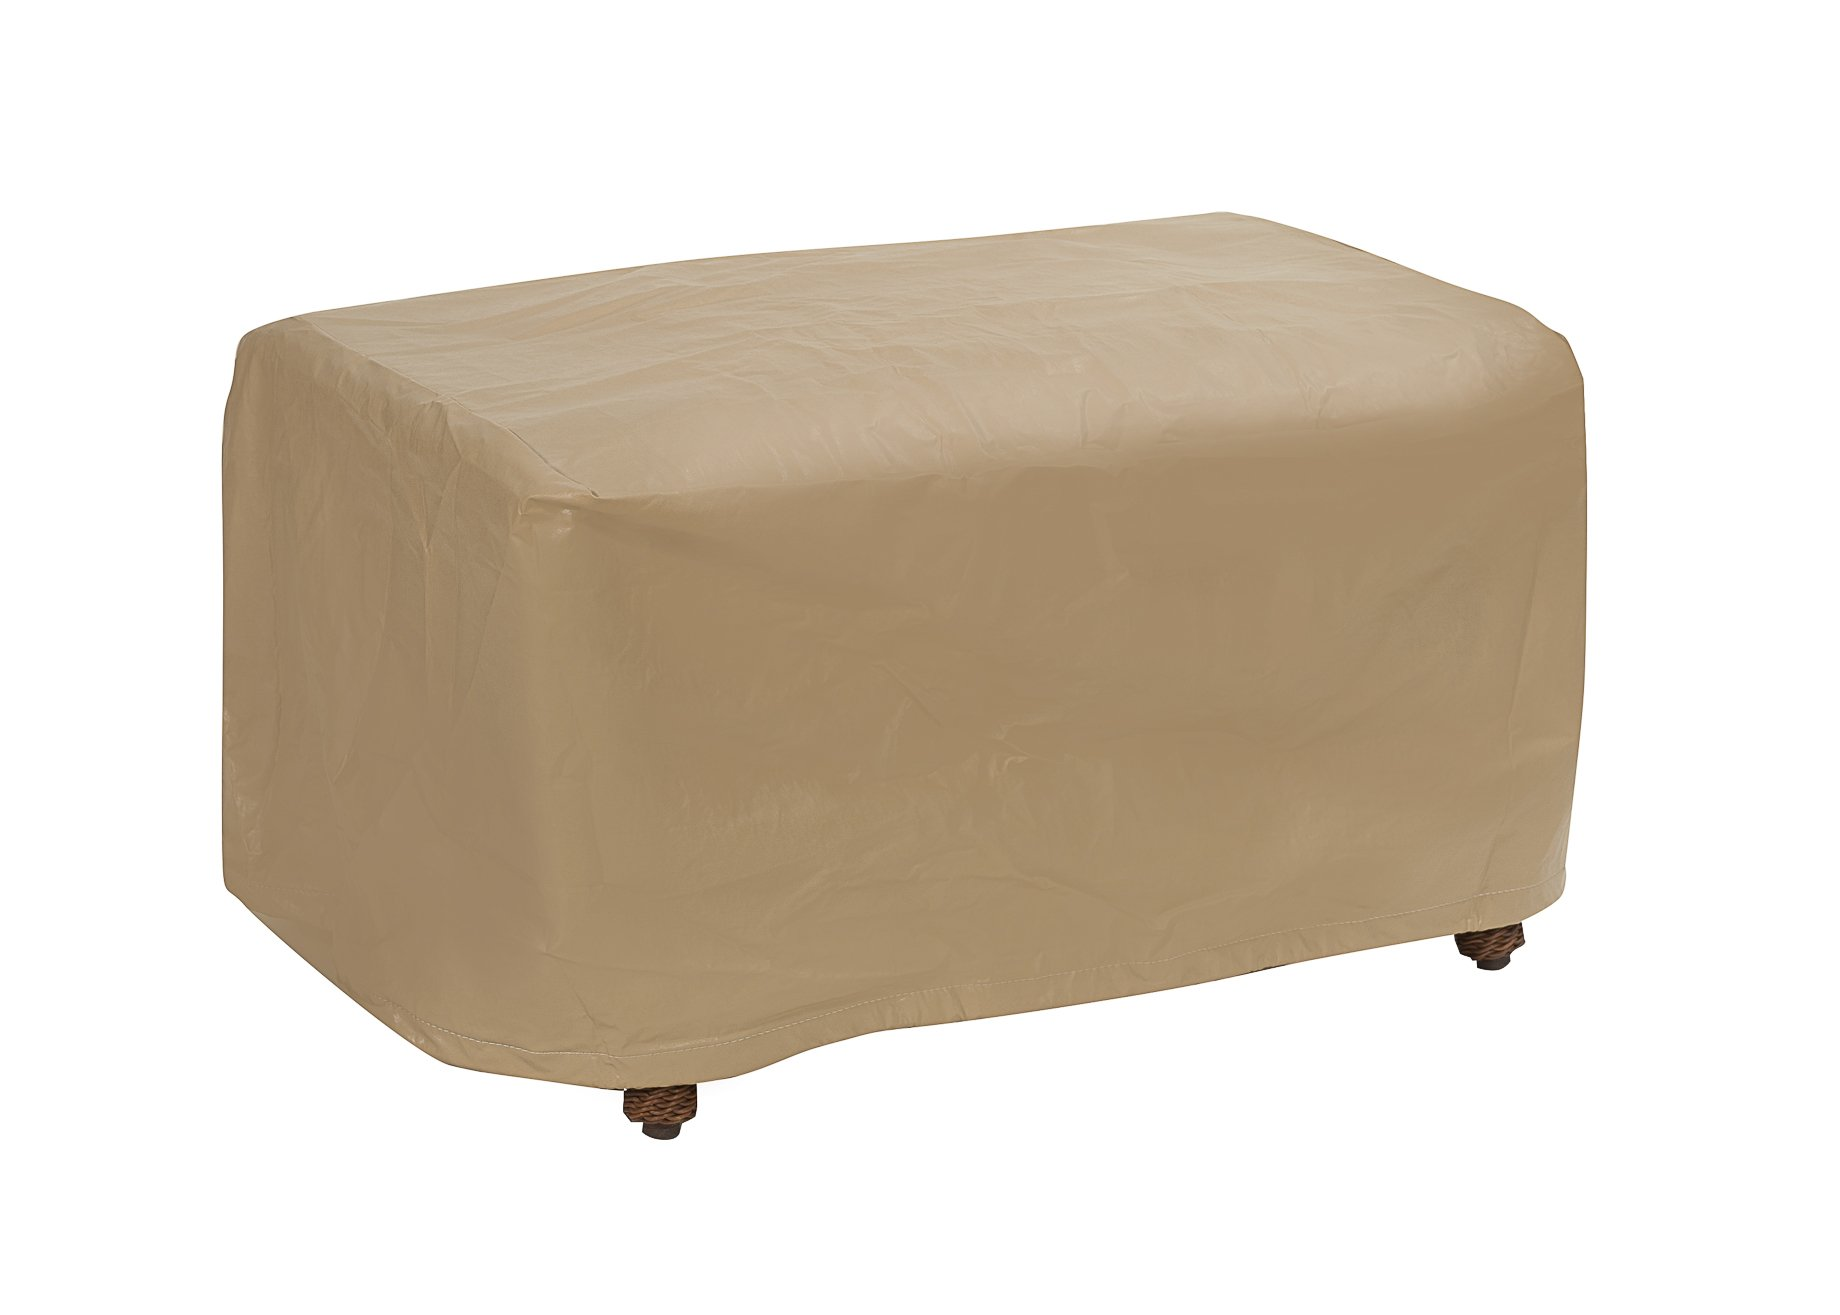 Protective Covers Weatherproof Ottoman Cover, Small, Tan